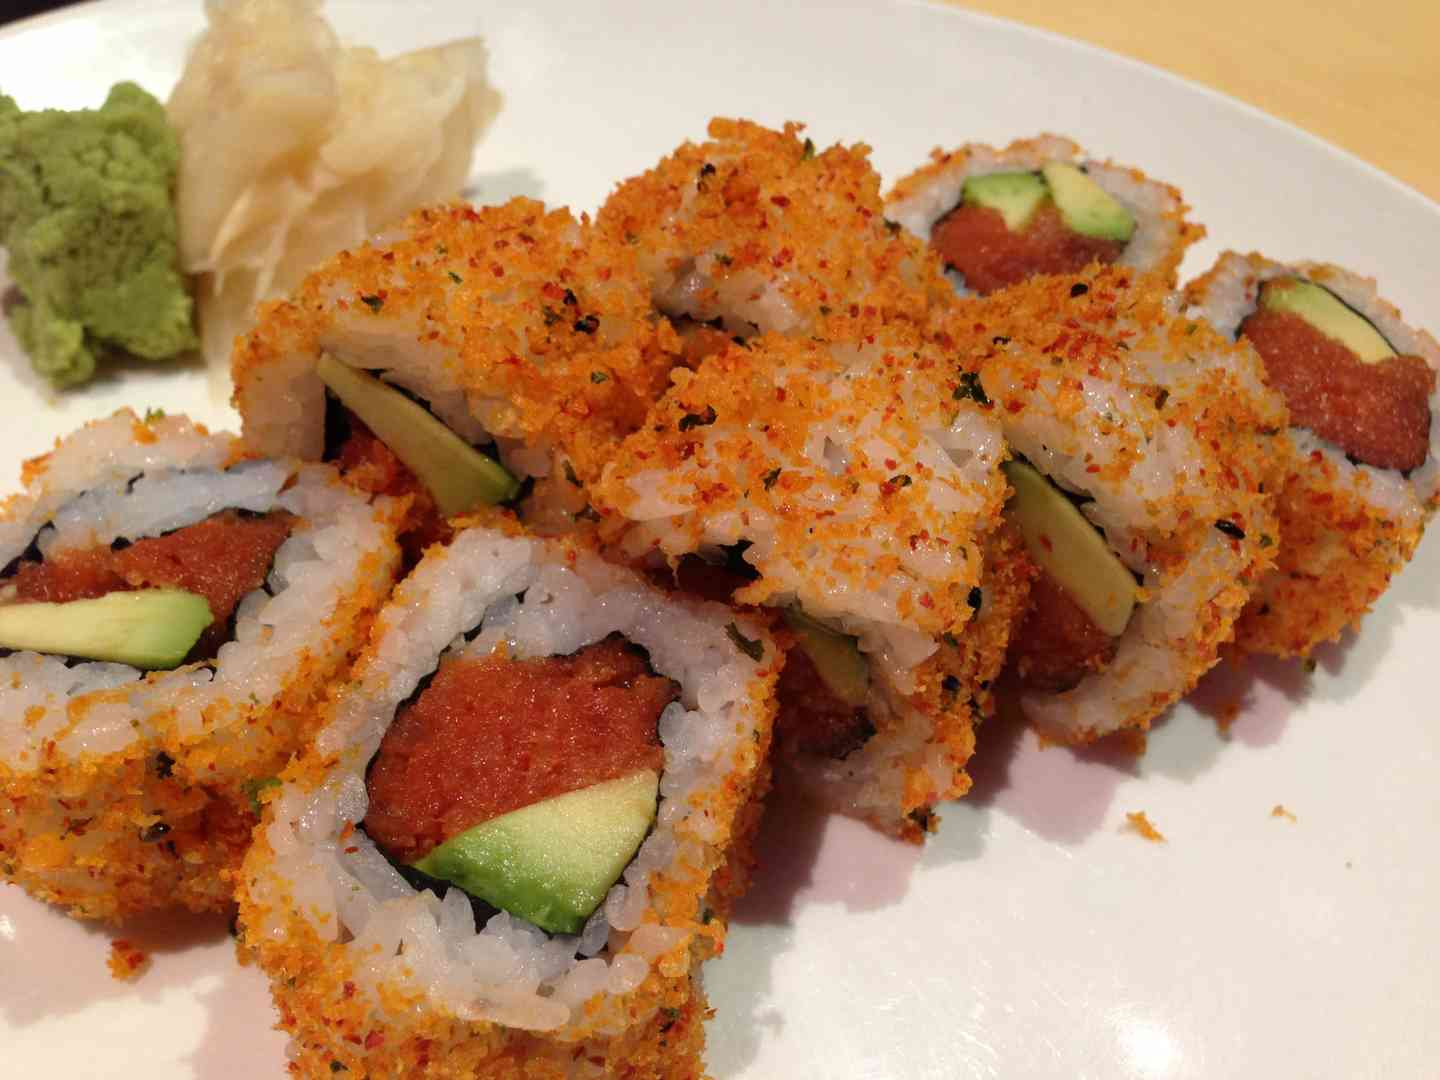 Spicy Tuna 7 Roll*